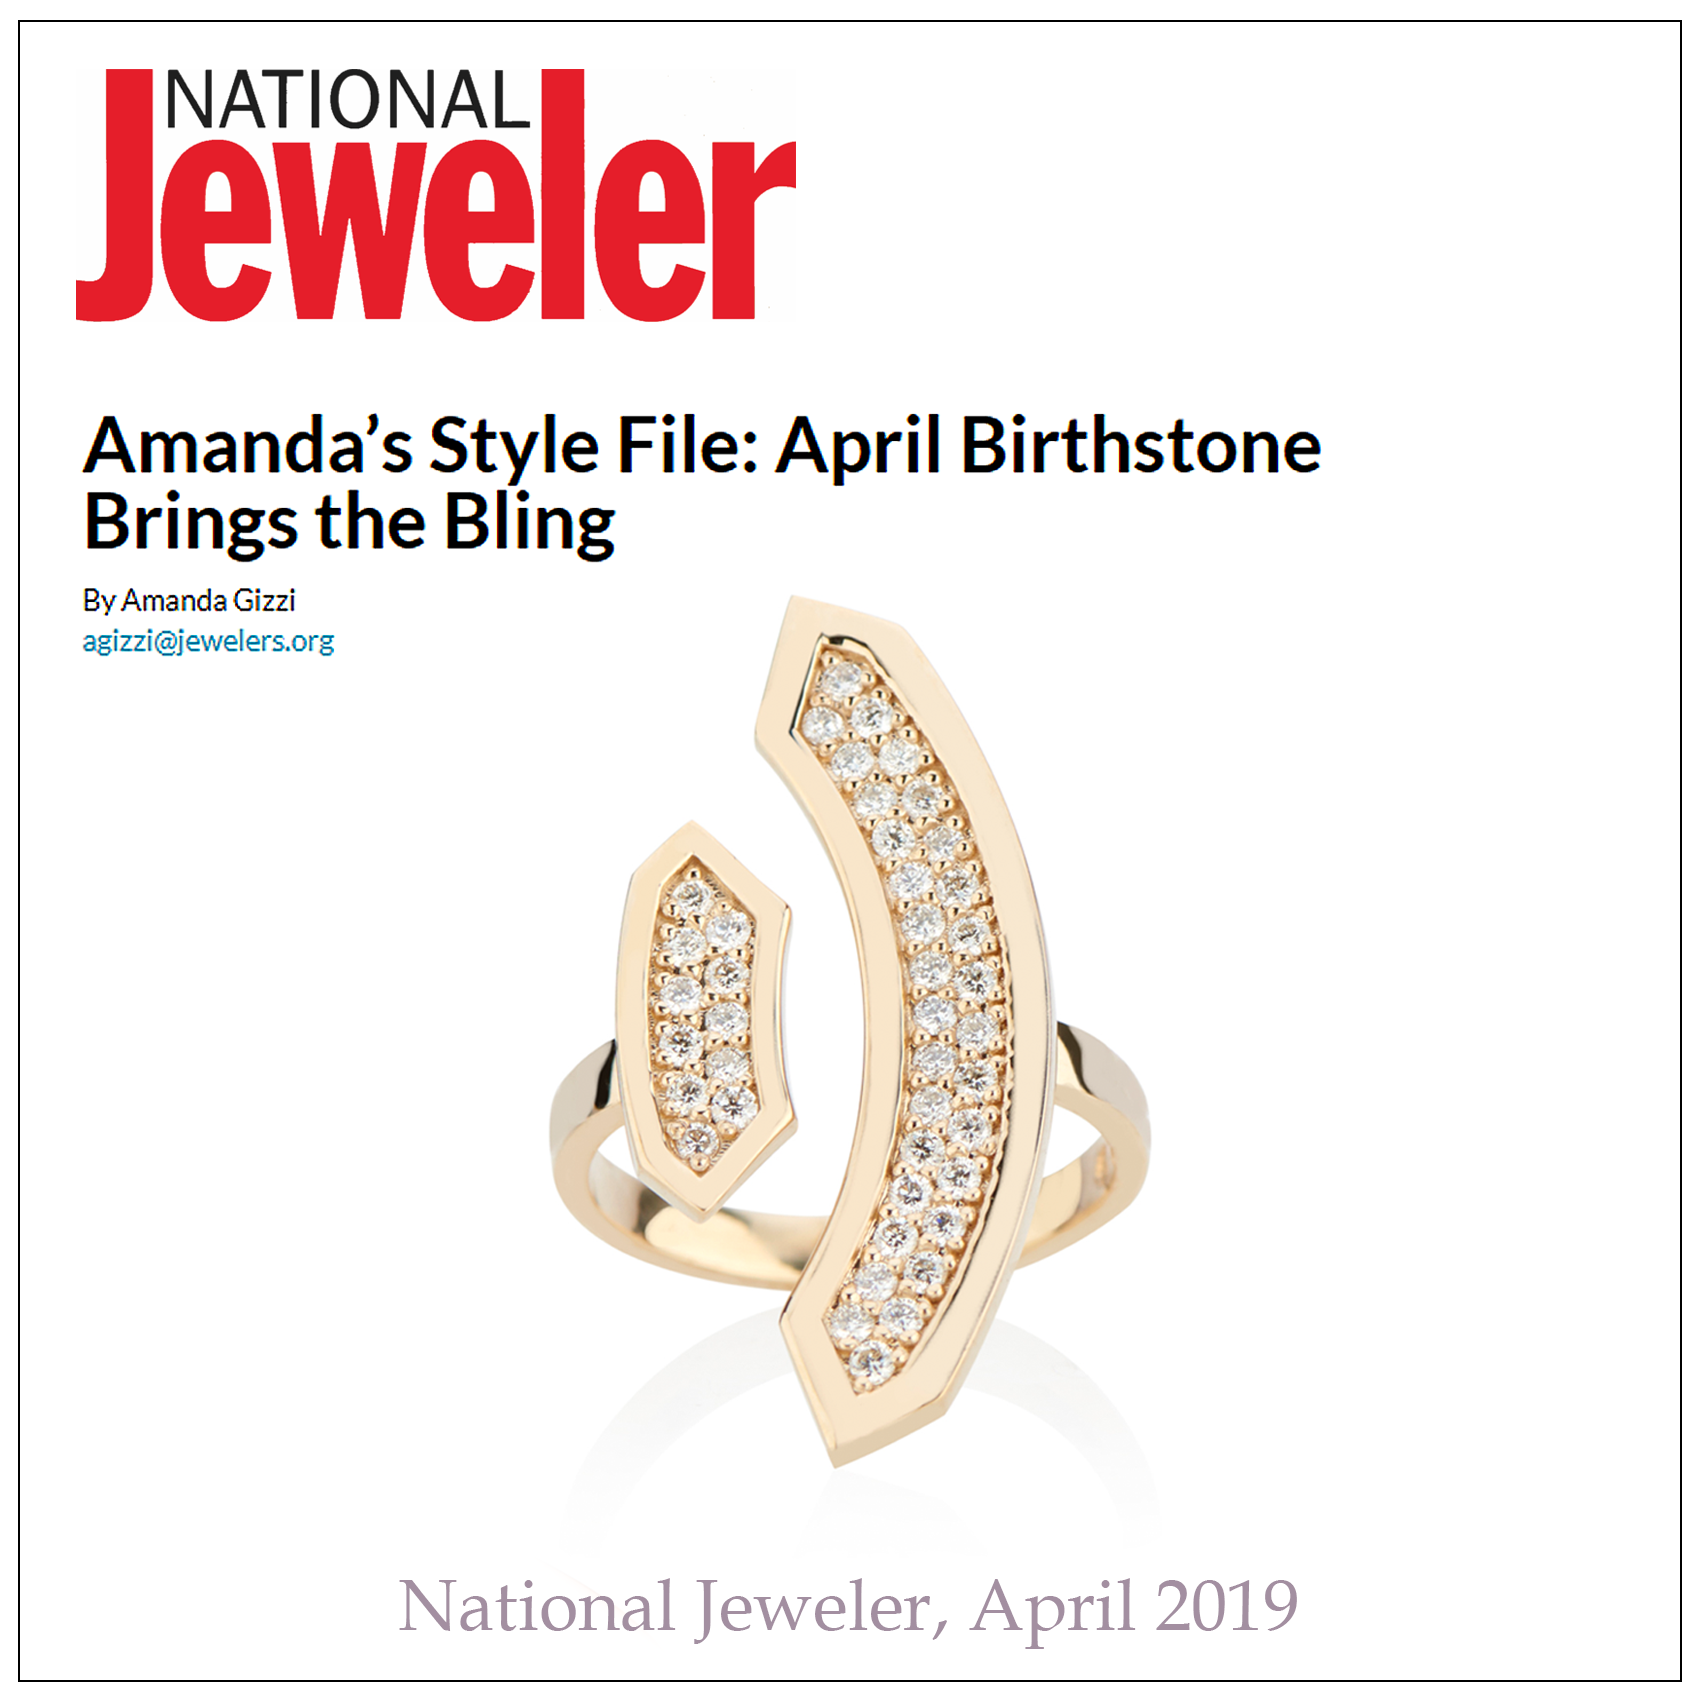 national-jeweler-april-2019-stellara.png